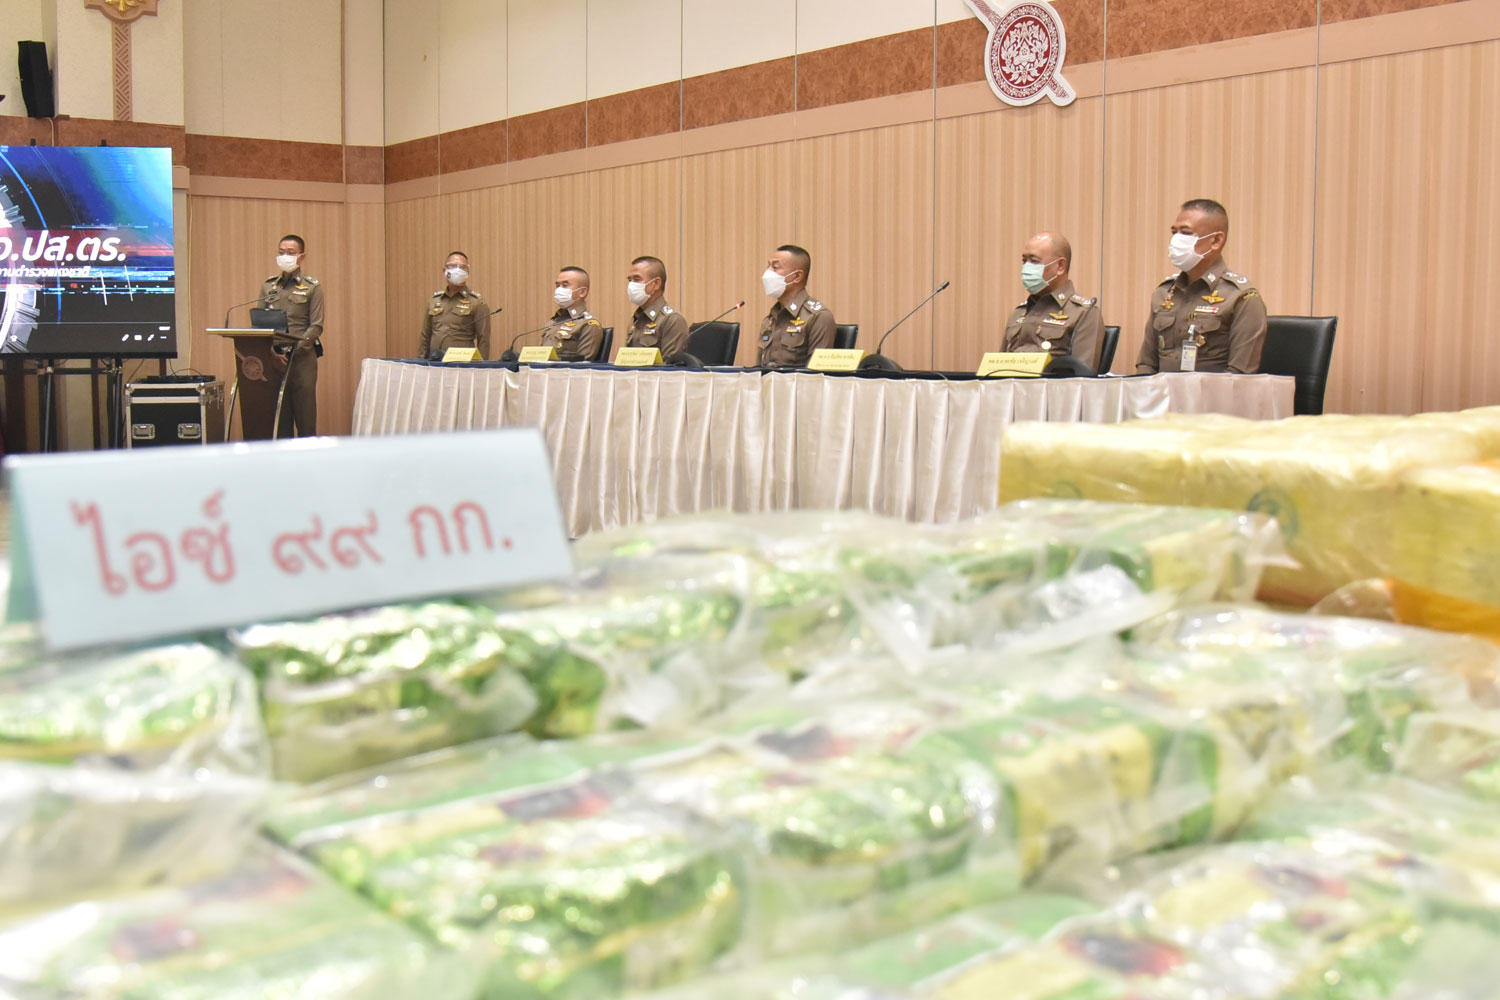 Packages containing 99 kilogrammes of crystal methamphetamine in total, seized from drug traffickers arrested in Khon Kaen on May 16, displayed during a police press conference on Thursday to showcase their achievements in drug suppression over the past six months. (Photo: Wassayos Ngamkham)